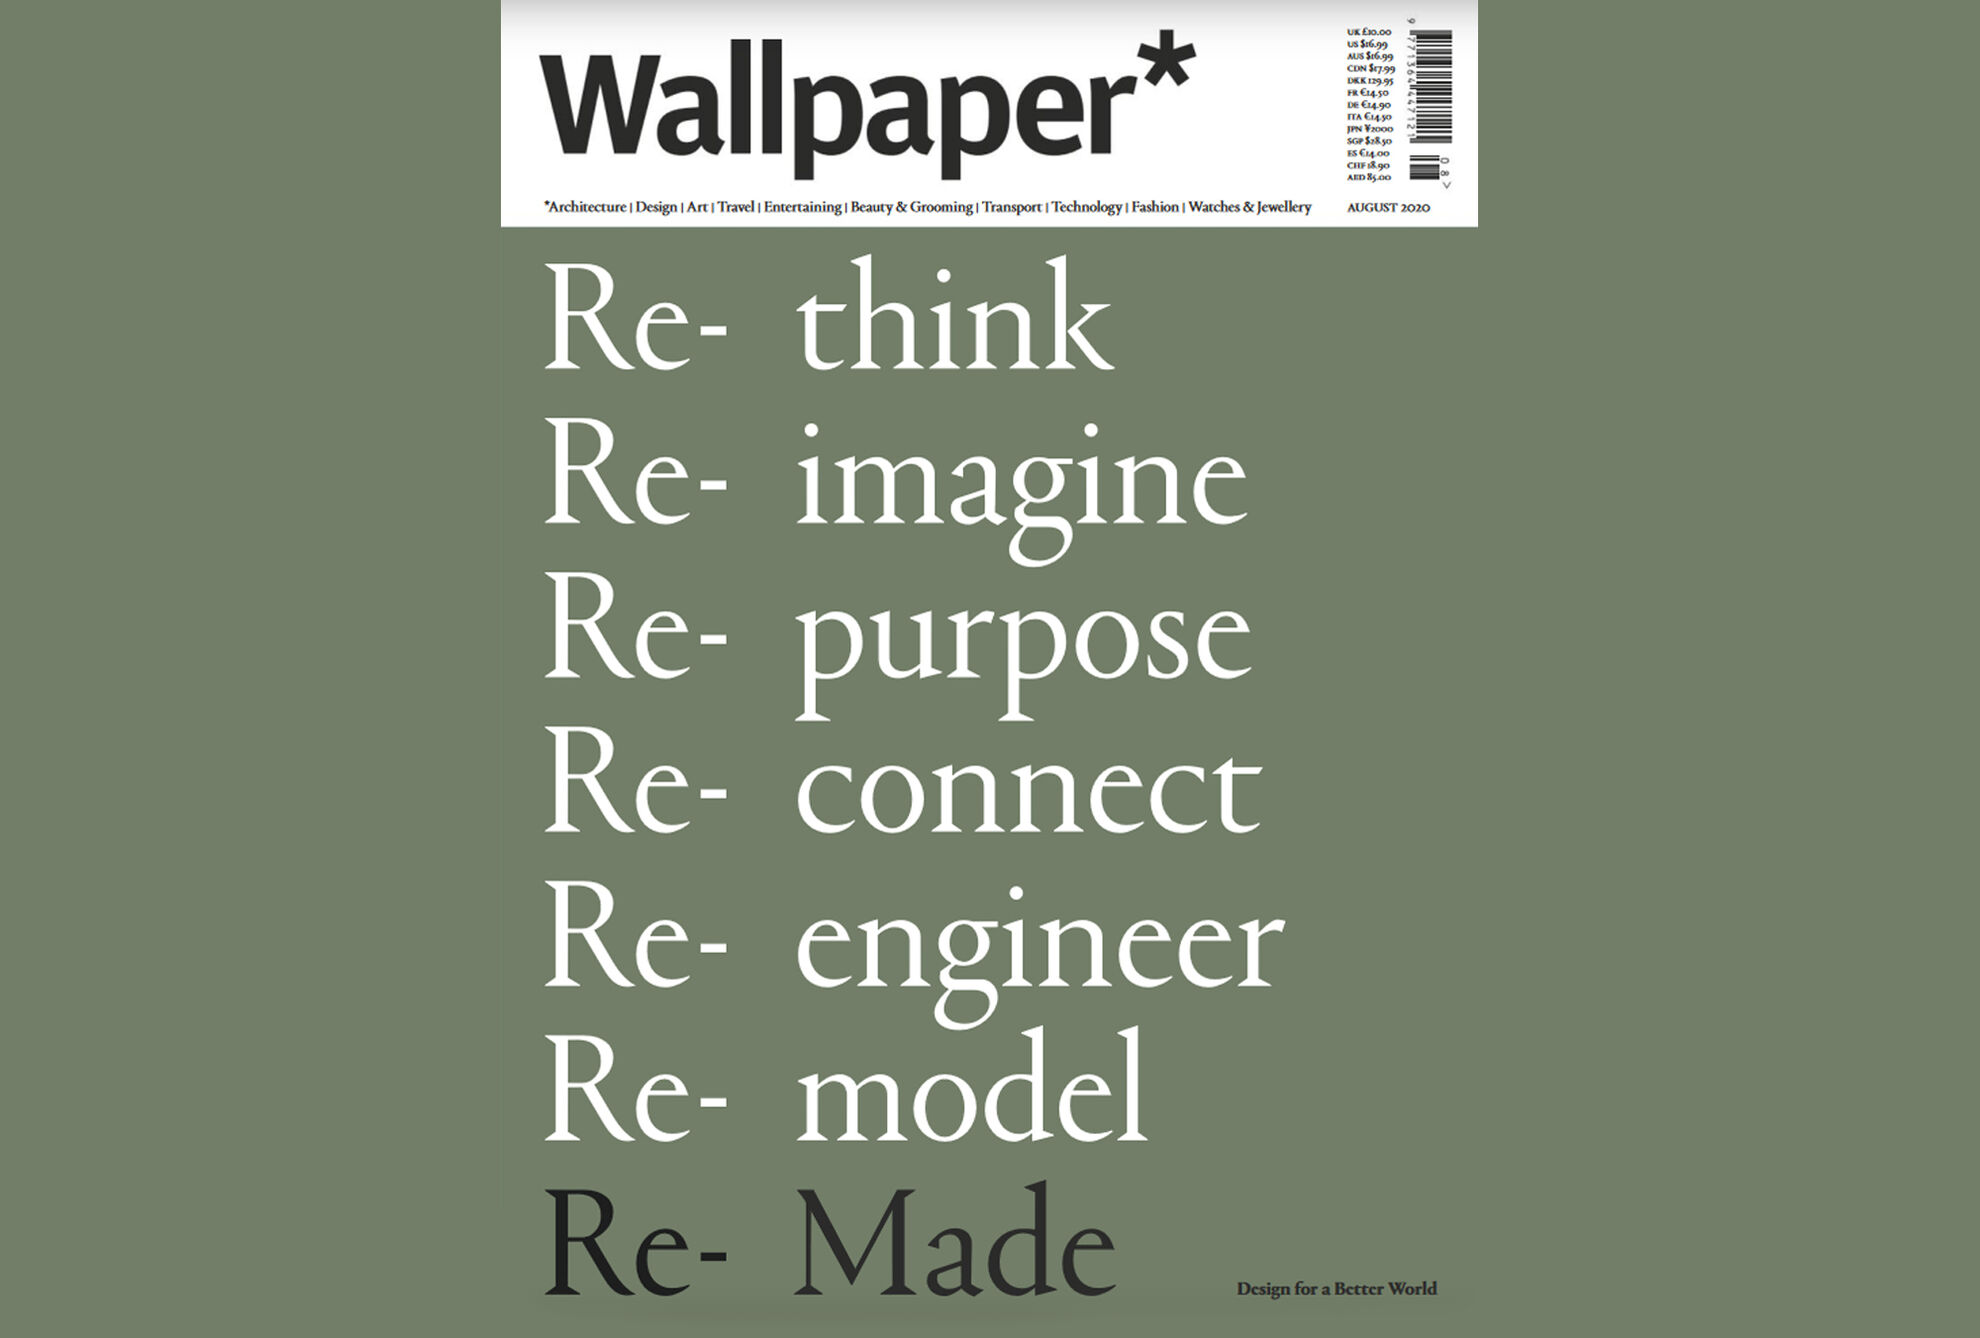 Wallpaper* Magazine Re-Made exhibition